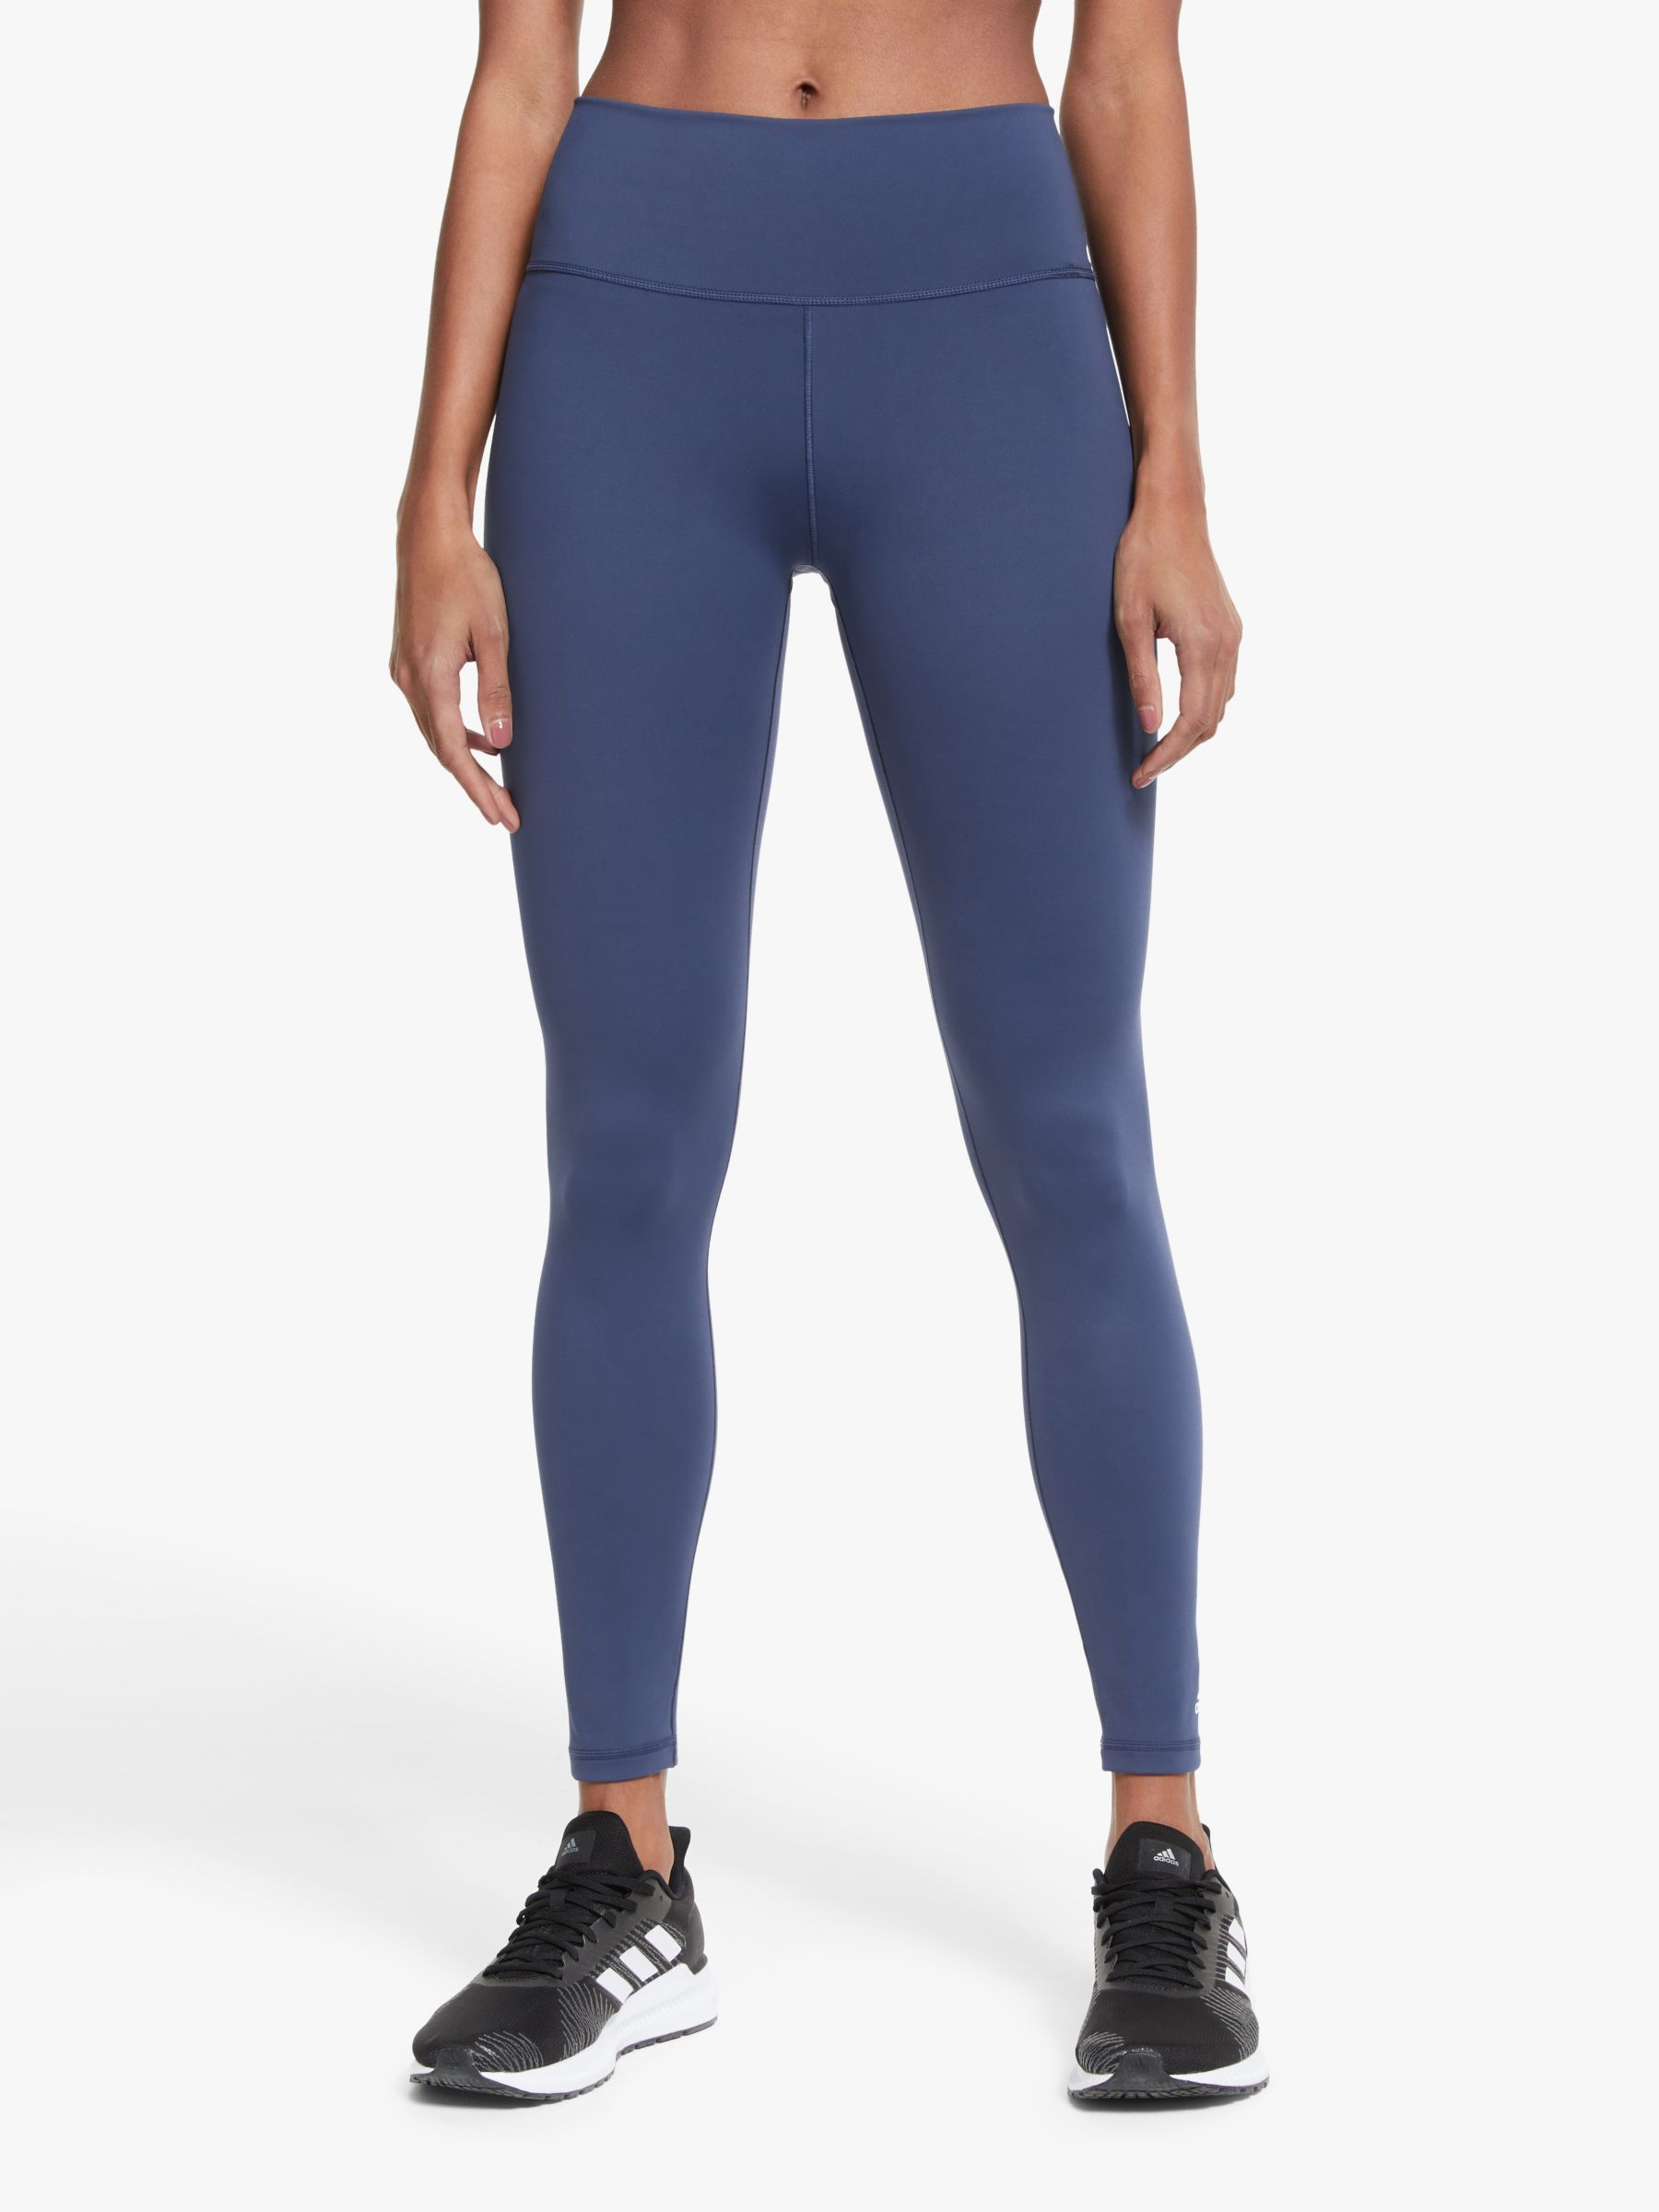 Adidas adidas Believe This Long Training Tights, Tech Indigo